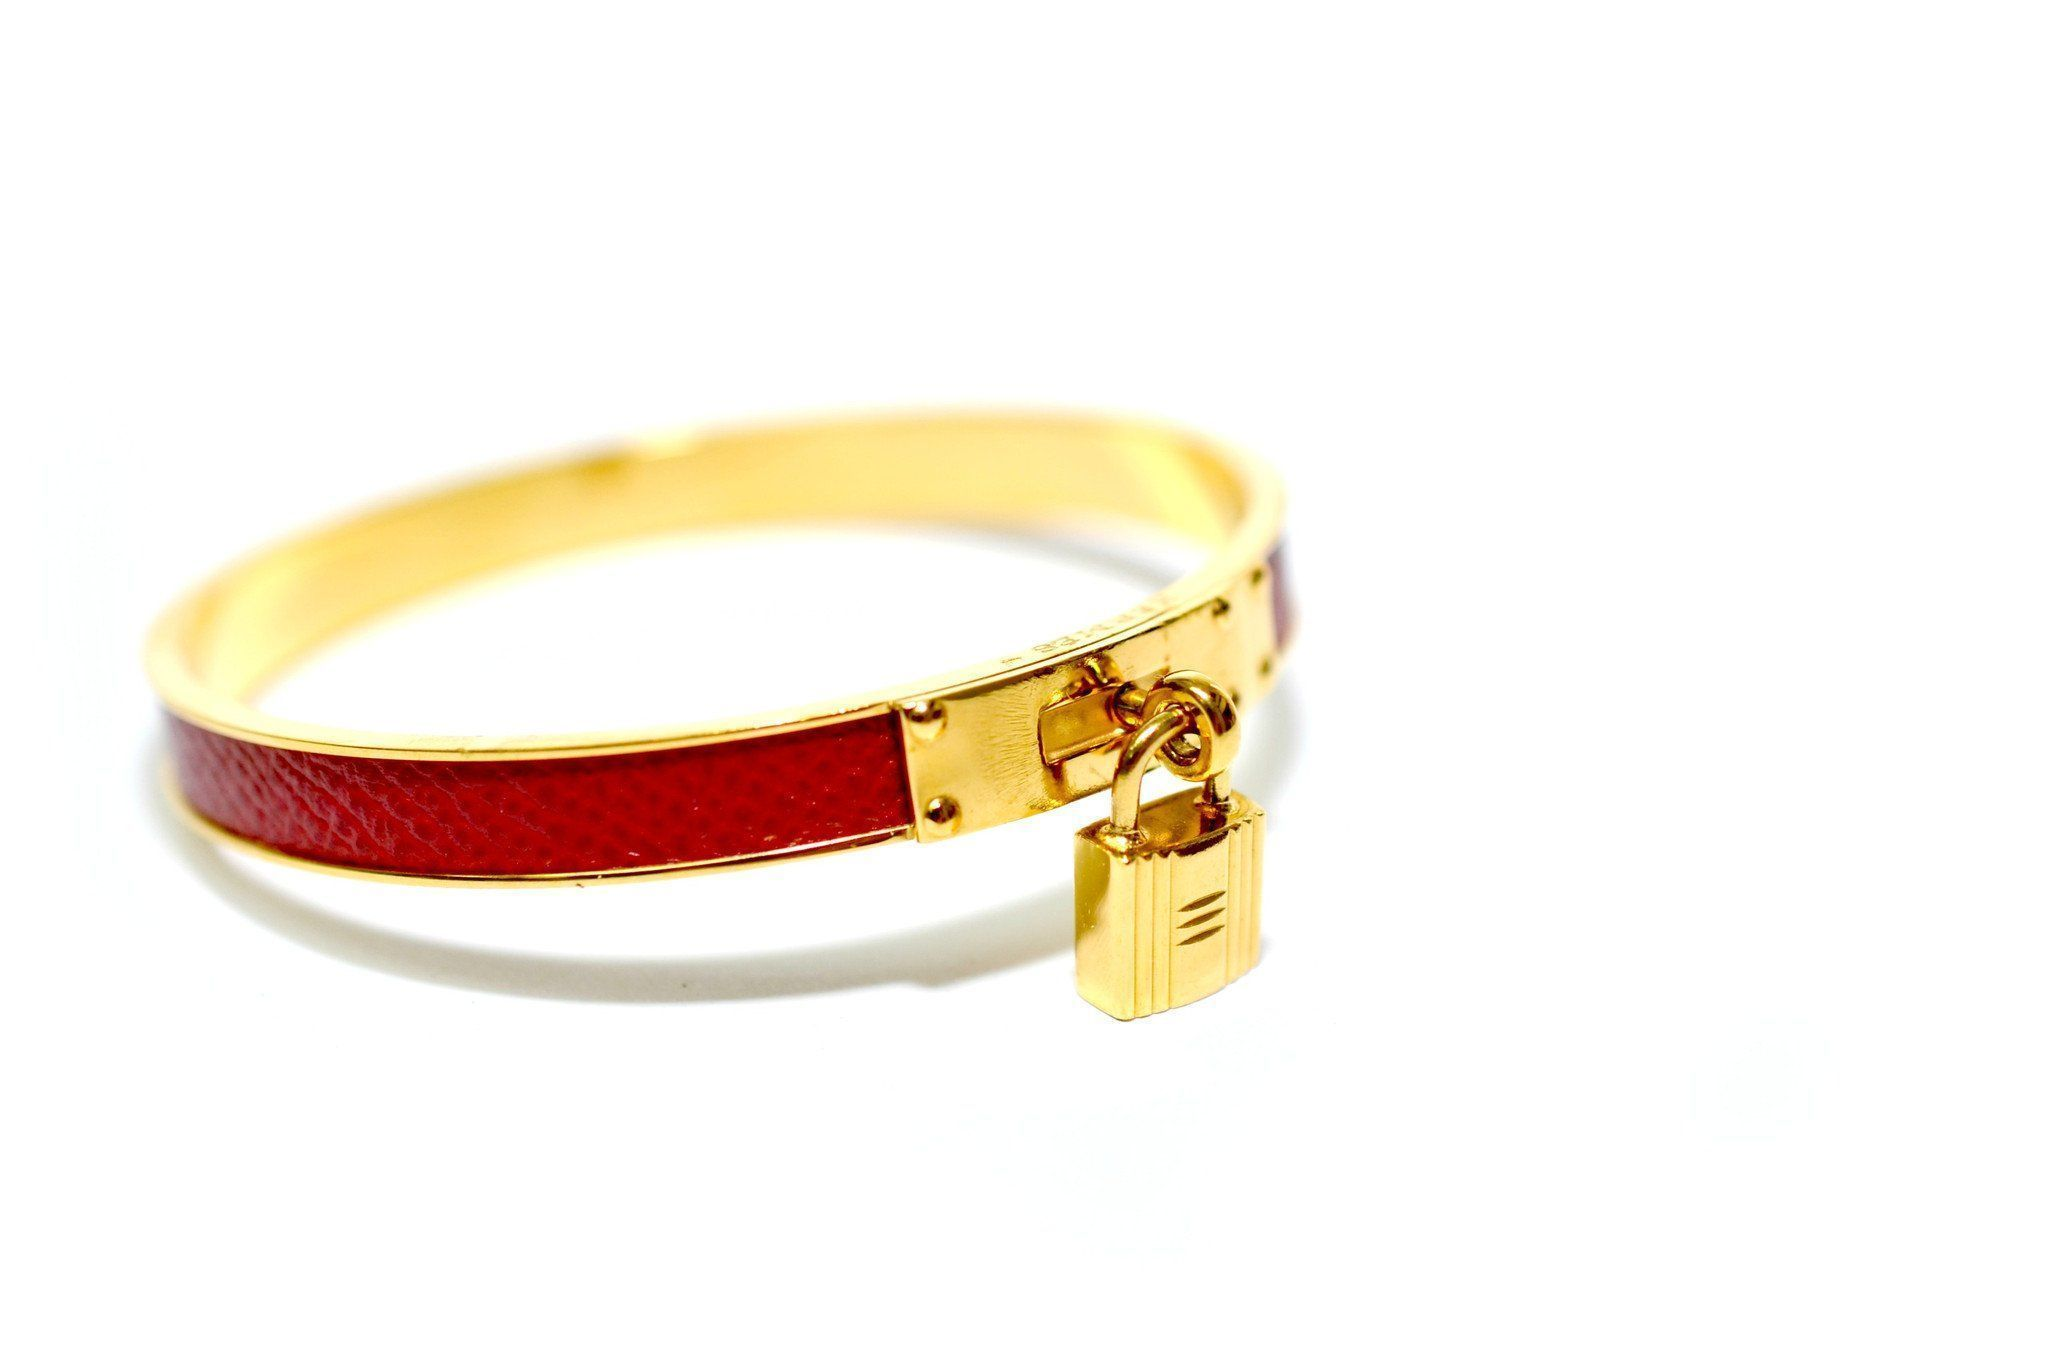 dccf9d56d Vintage Hermes Red Leather Gold Lock Bangle Bracelet – The Vintage ...